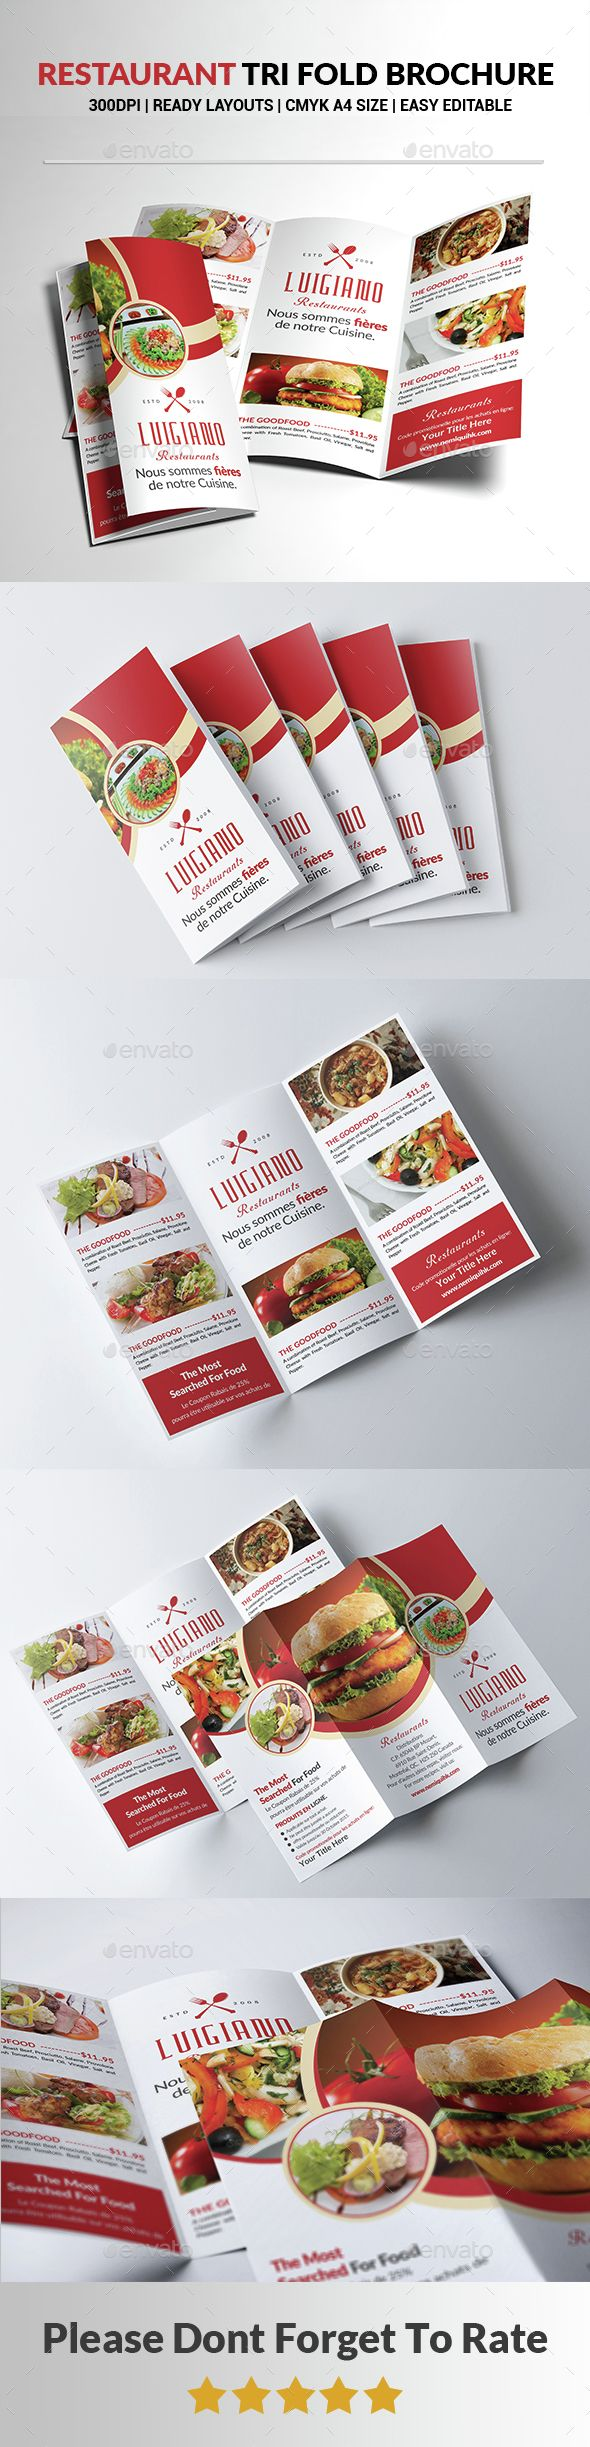 Restaurant Tri Fold Brochure Template PSD. Download here: http://graphicriver.net/item/restaurant-tri-fold-brochure-/14597138?ref=ksioks